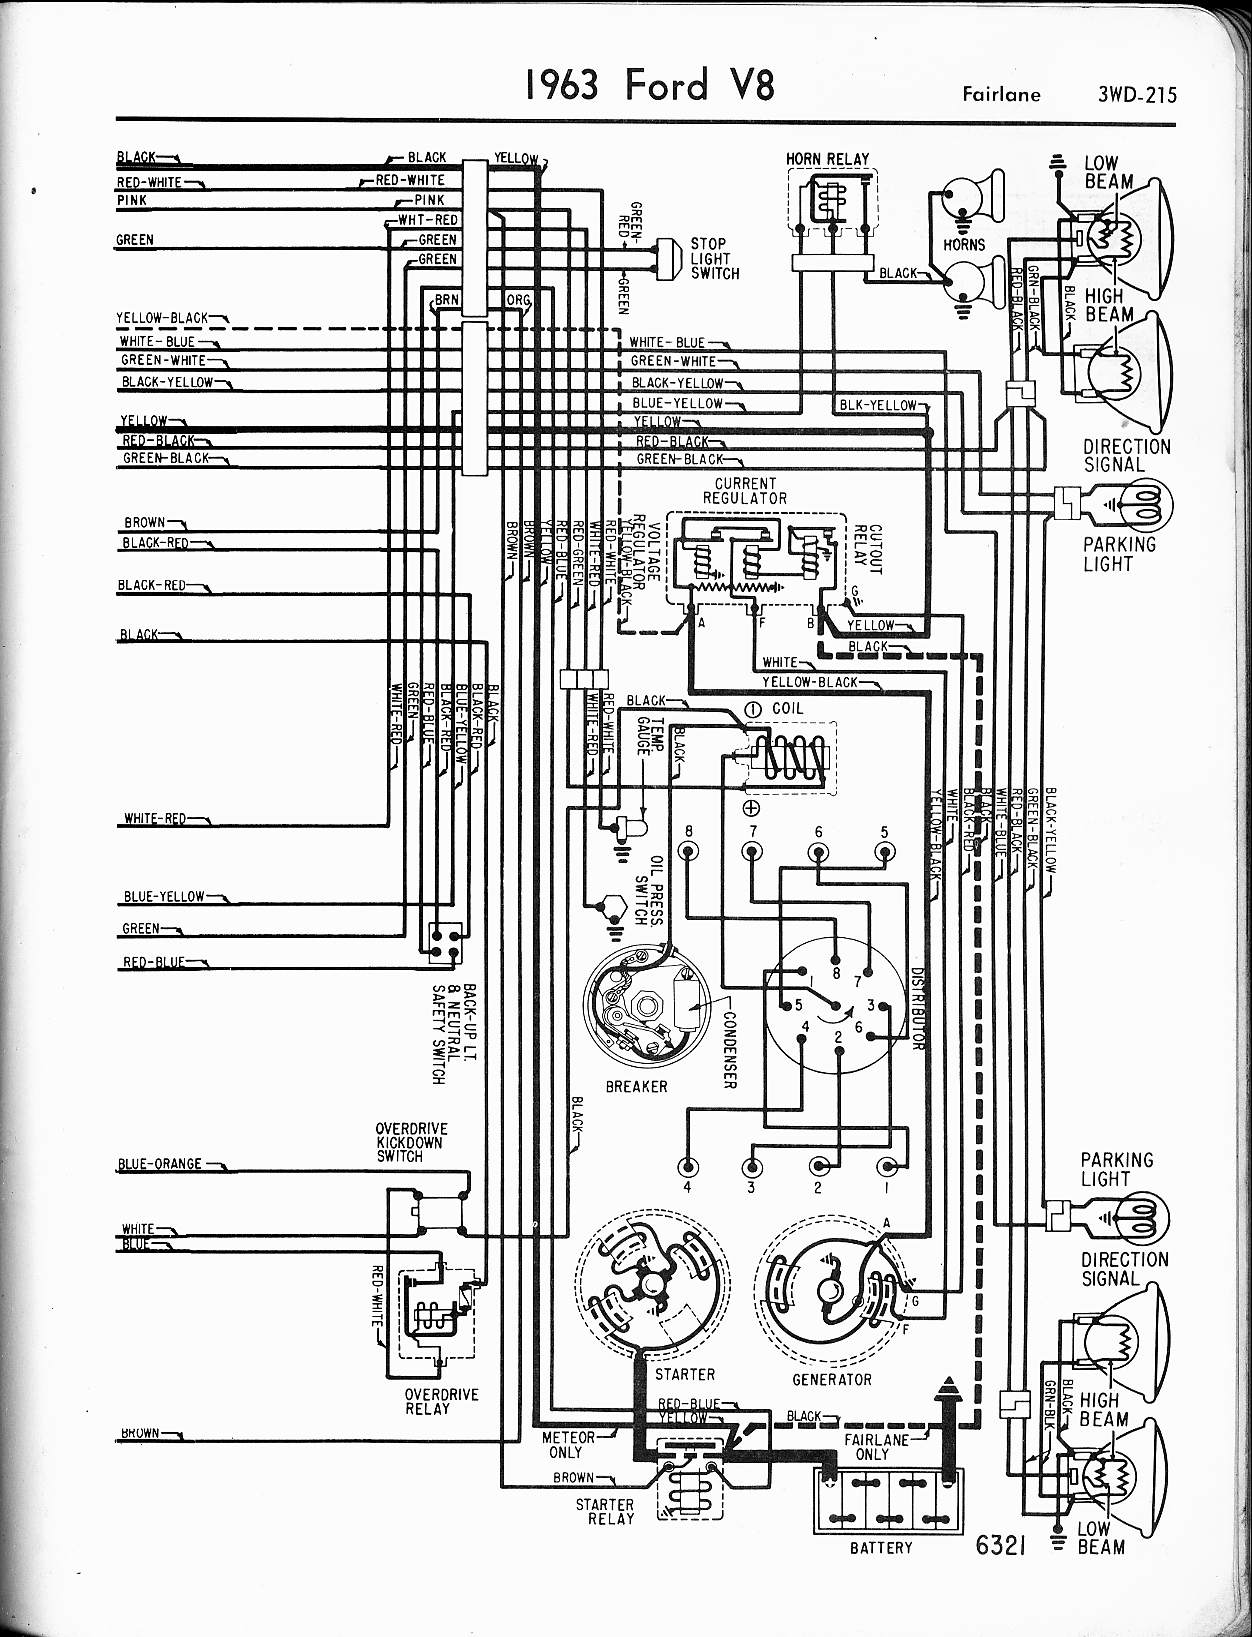 1962 Ford Falcon Ignition Switch Wiring Diagram, 1962